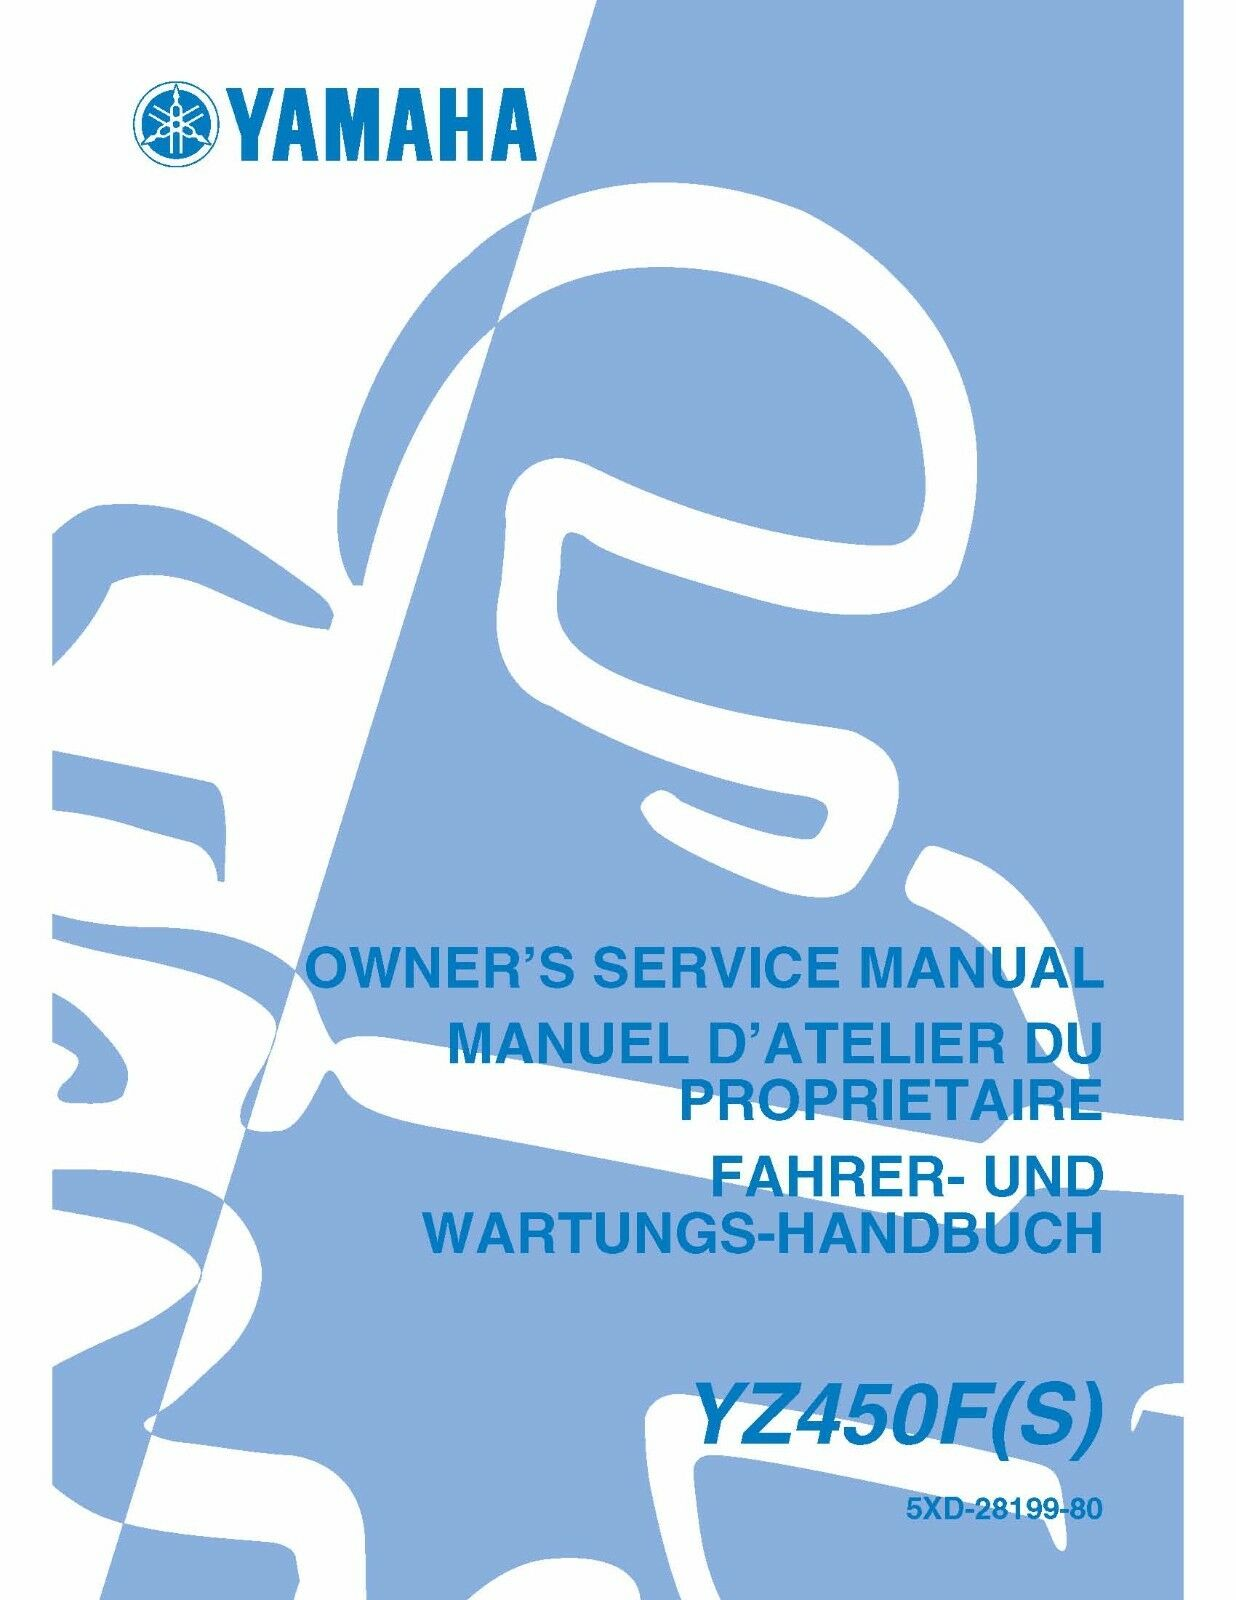 Yamaha owners service workshop manual 2004 YZ450F(S) 1 of 12FREE Shipping  ...